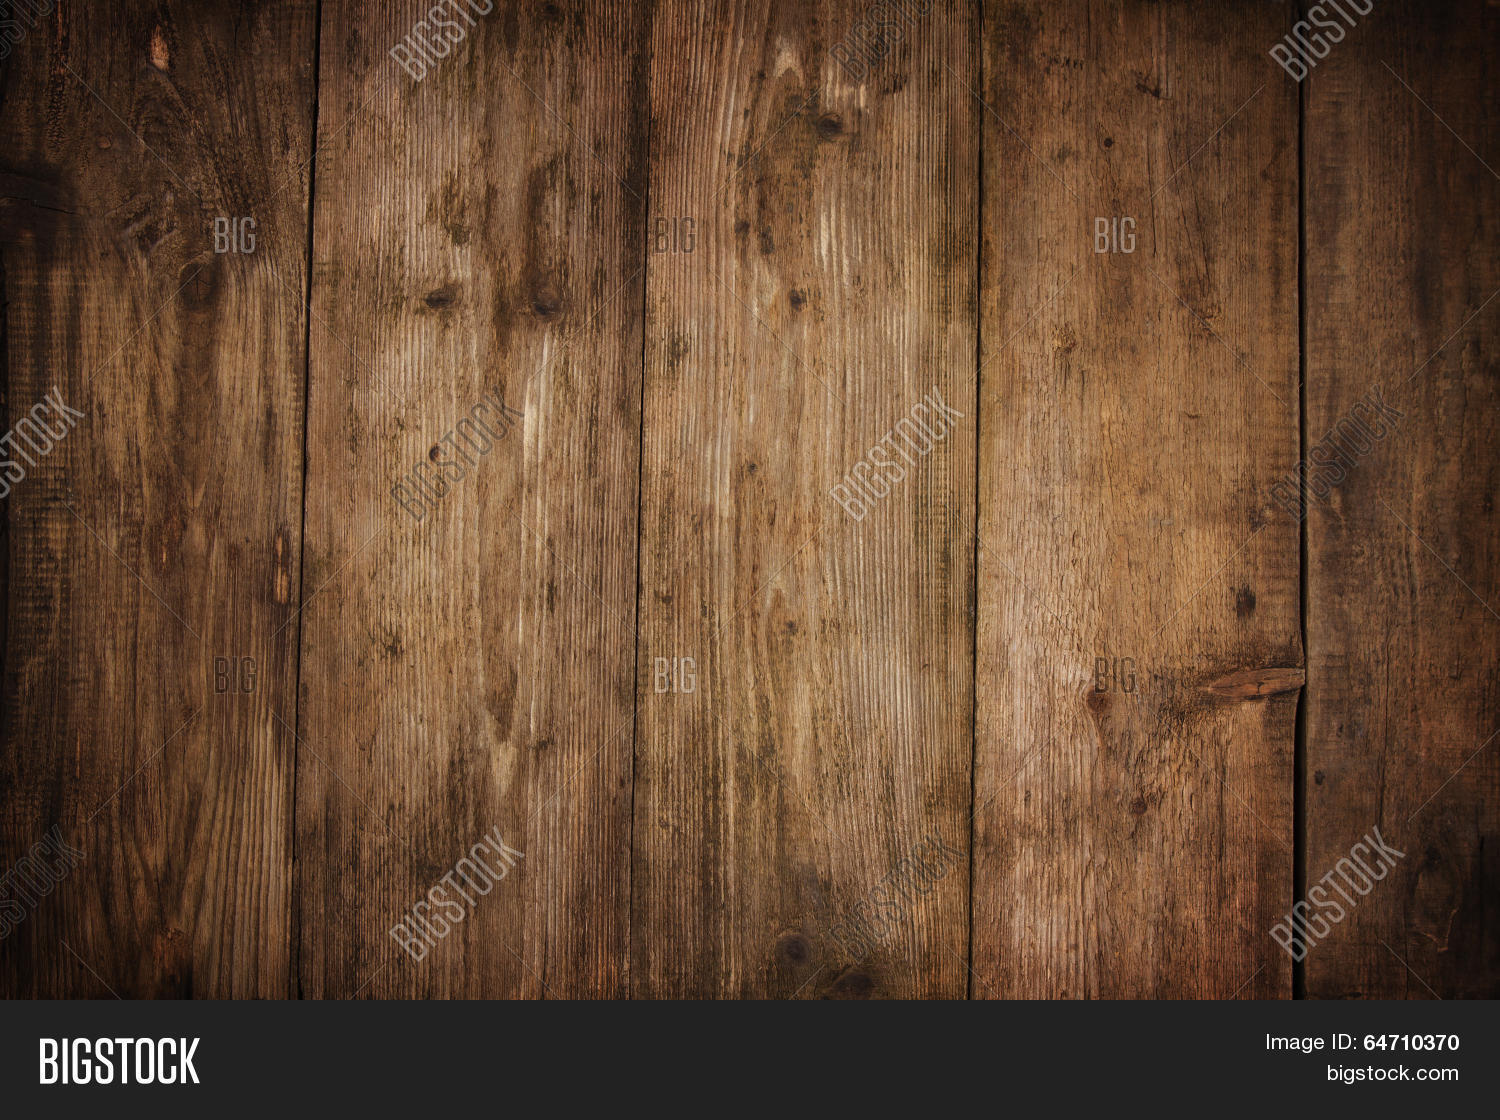 Wood Texture Plank Grain Background, Wooden Desk Table Or Floor, Old ...